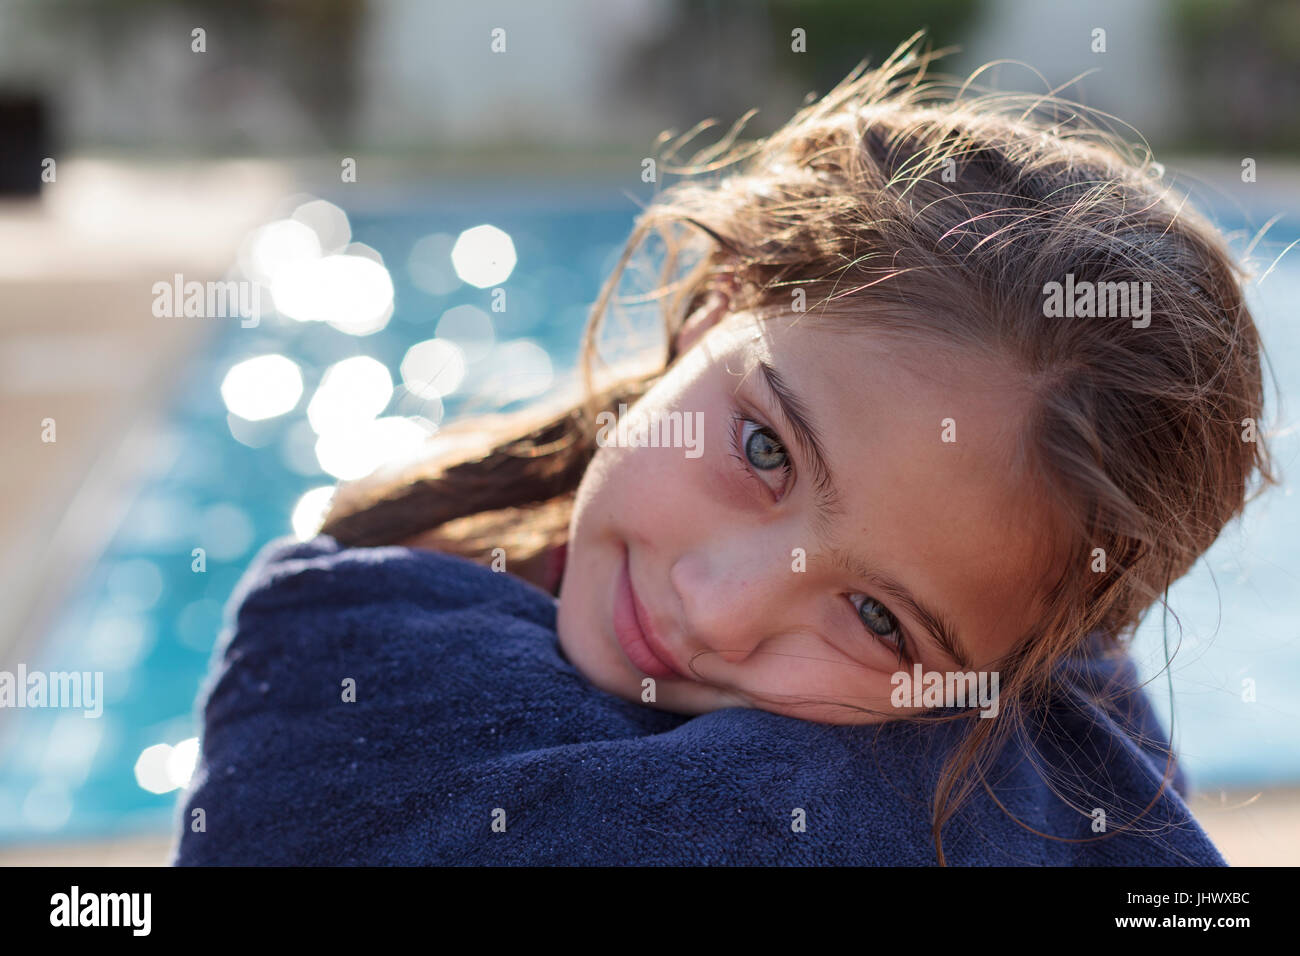 Young girl wrapped in blue towel after swimming in pool Stock Photo